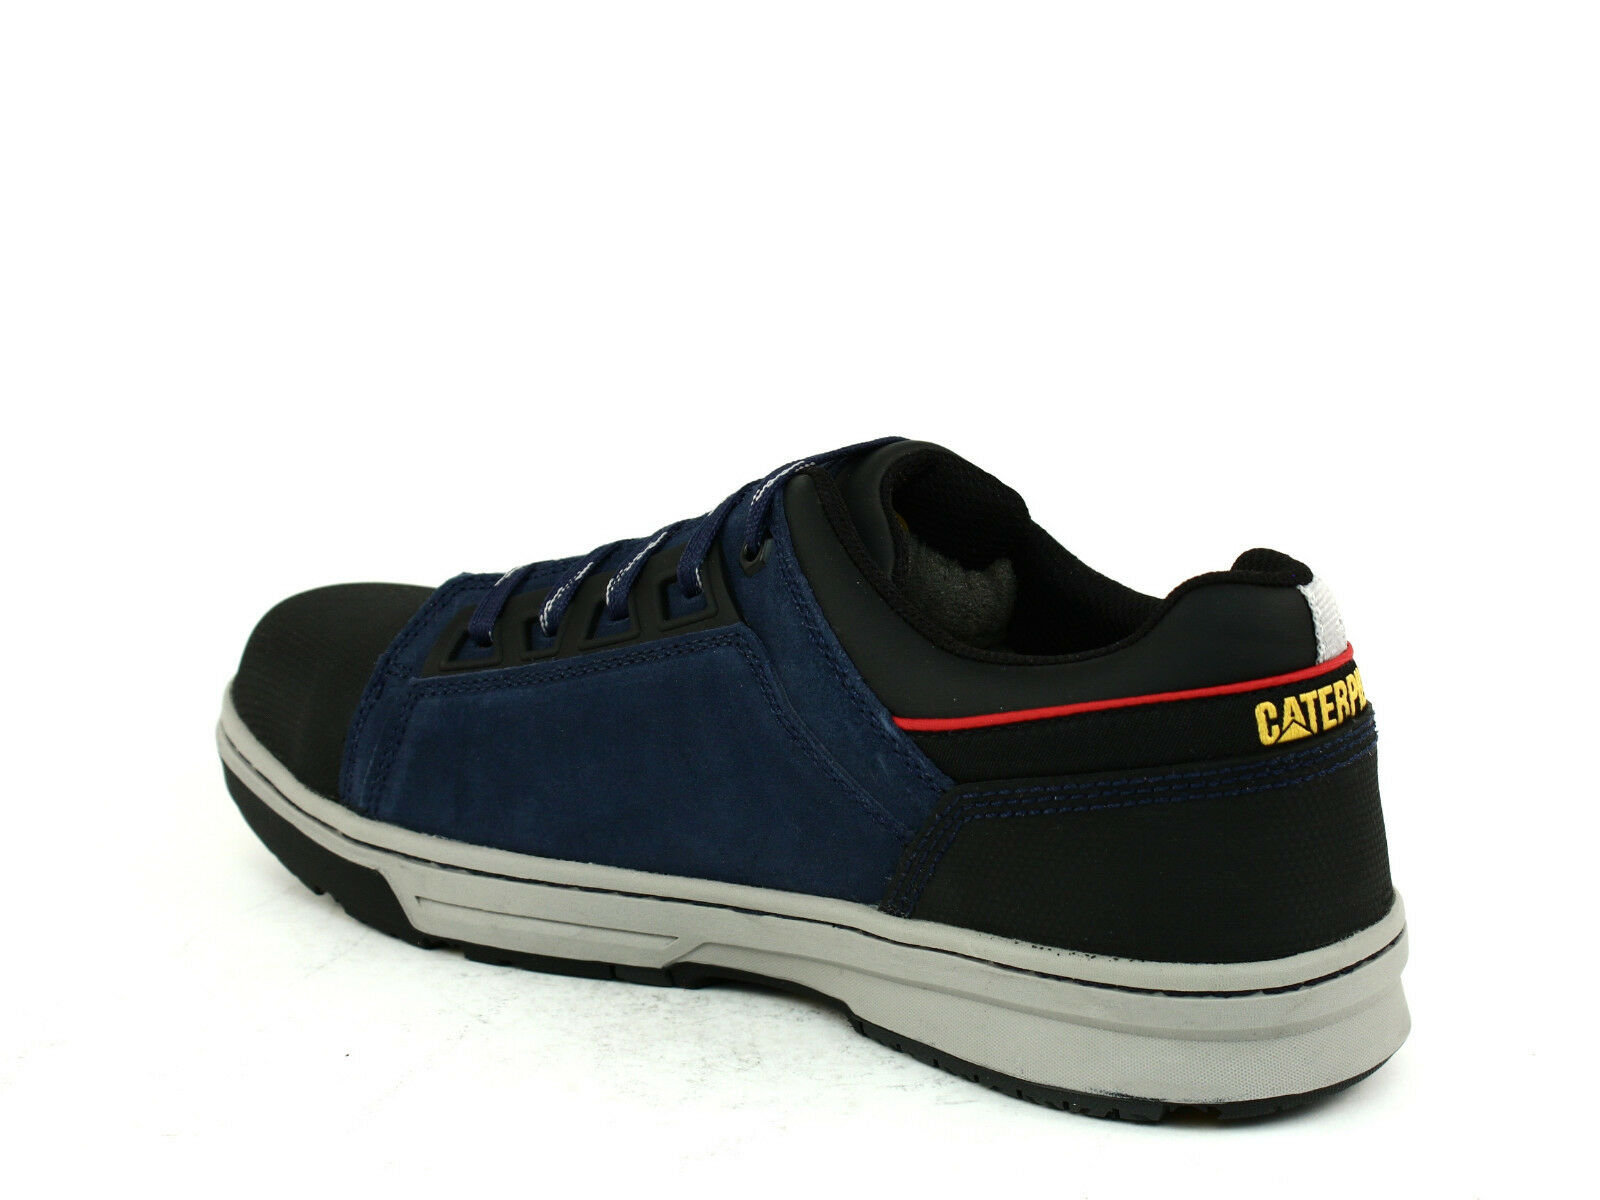 Caterpillar CONCAVE LO ST Steel Toe  Uomo Work Schuhes Athletic Navy Leder Suede Schuhes Work dd05b7